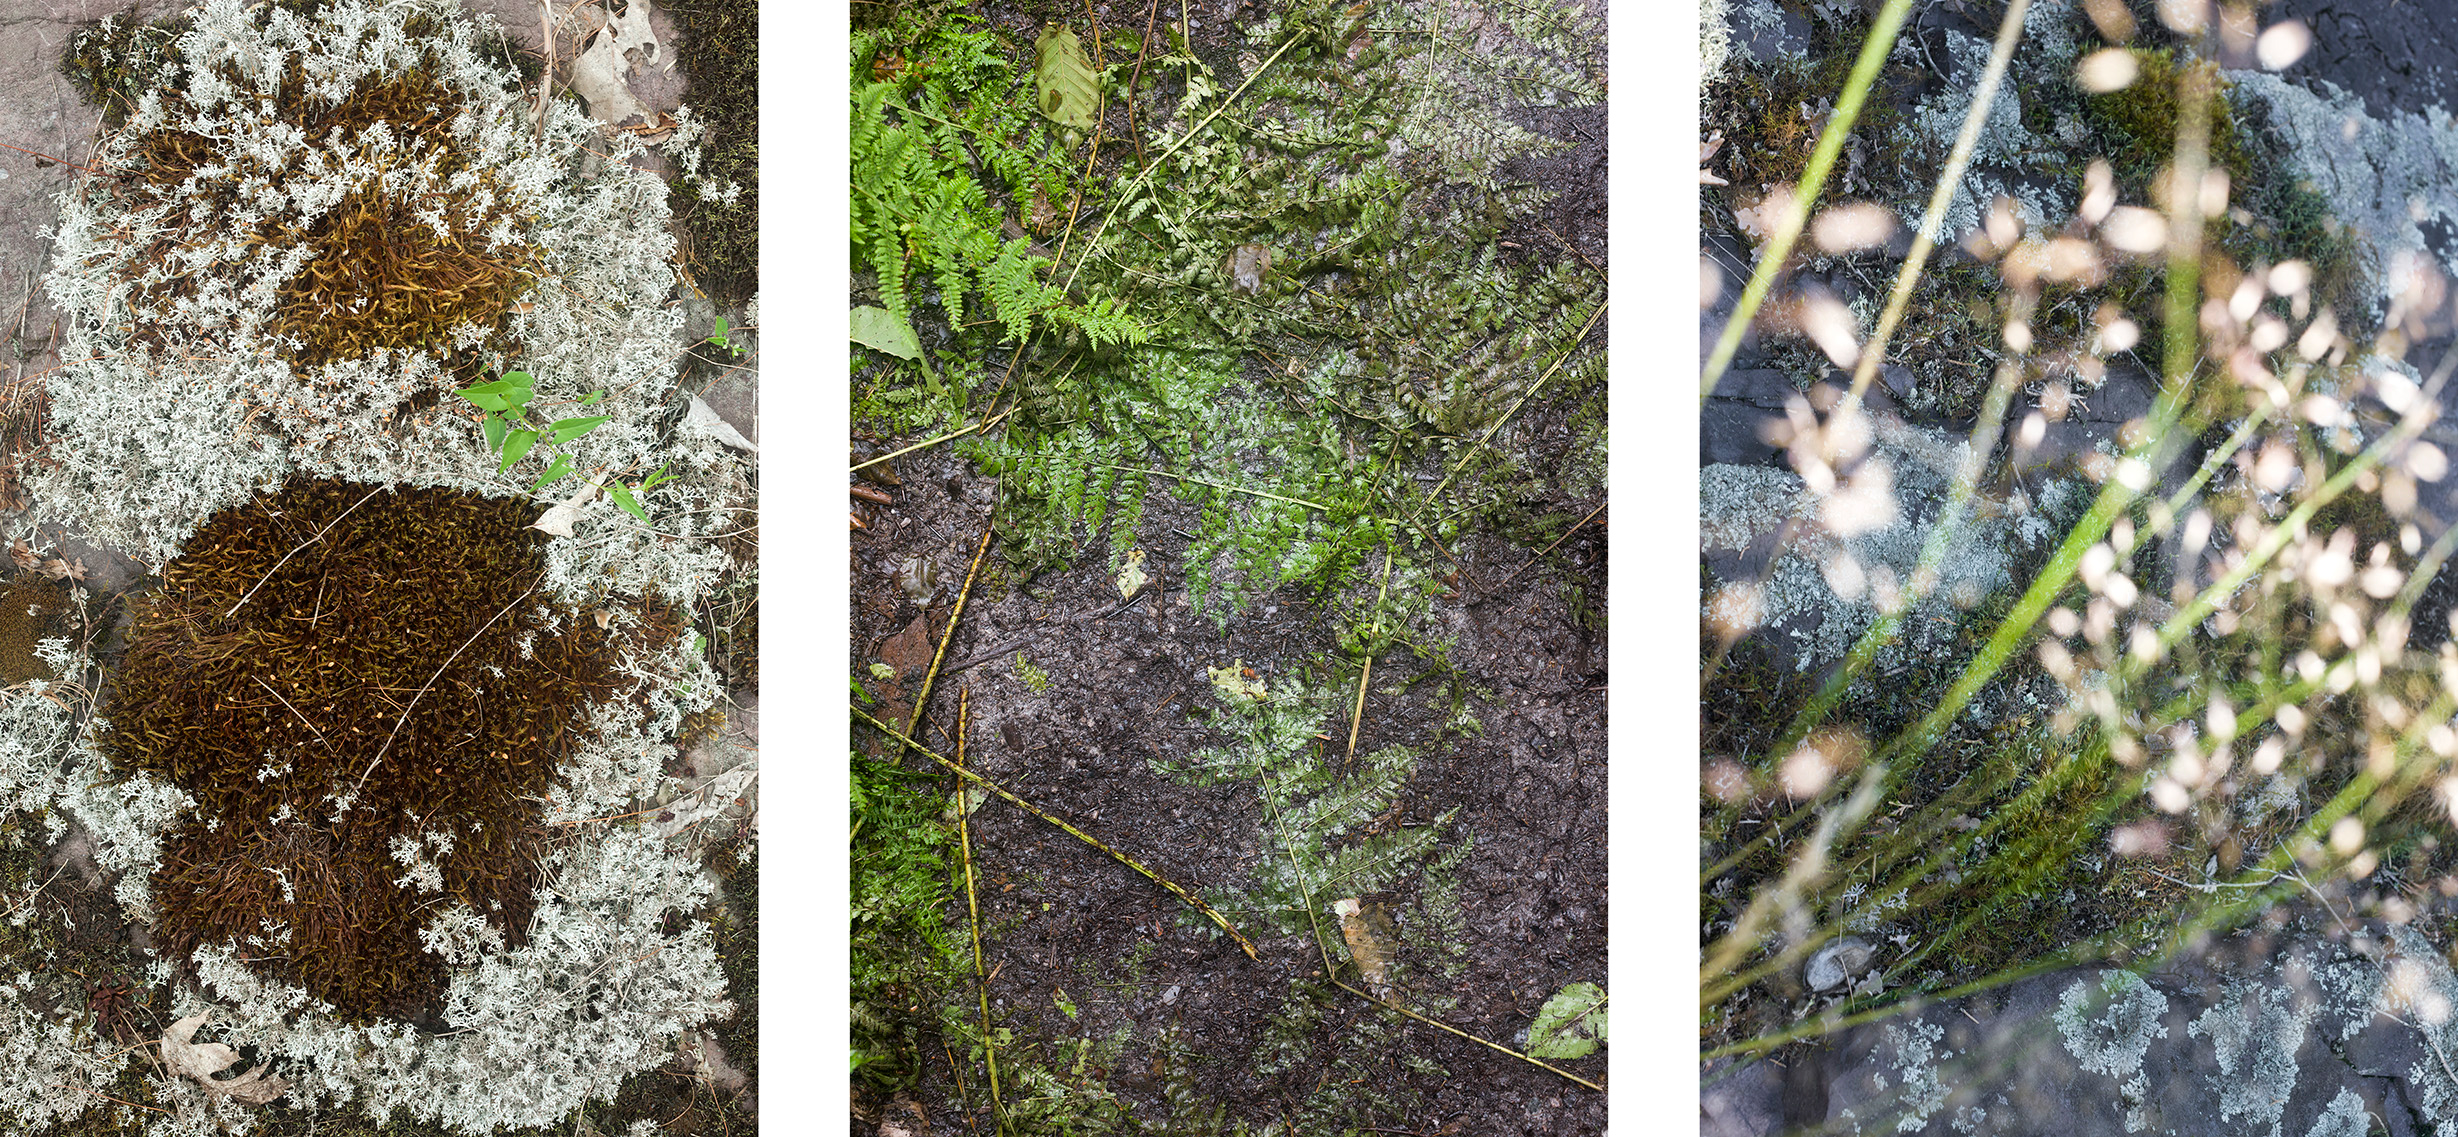 Triptych looking down on the forest floor.